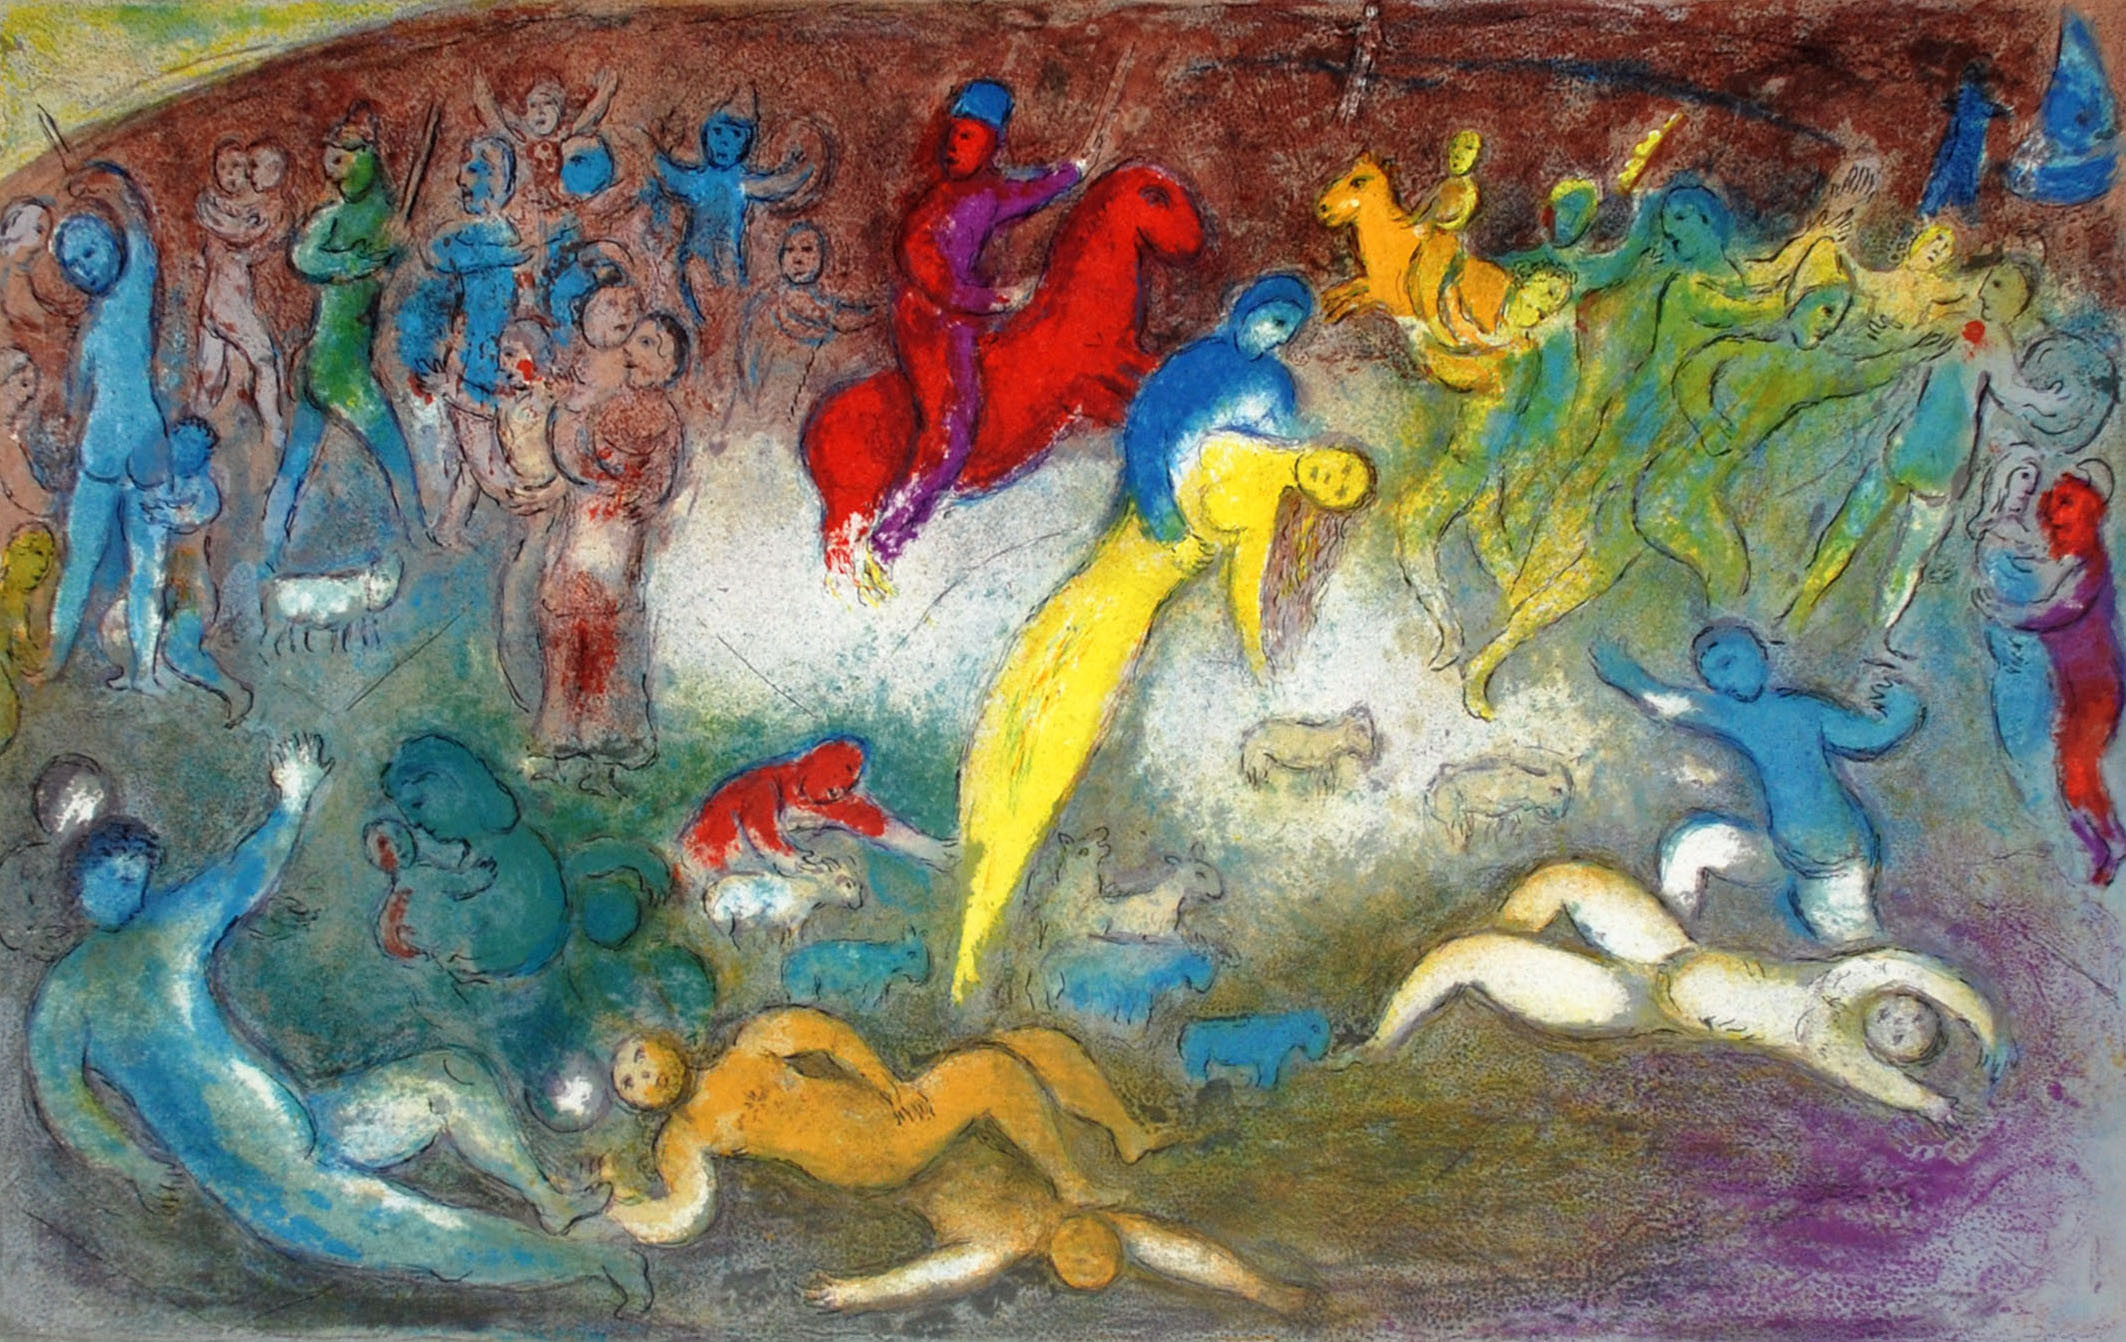 List Of Paintings By Marc Chagall - Defendbigbird.com